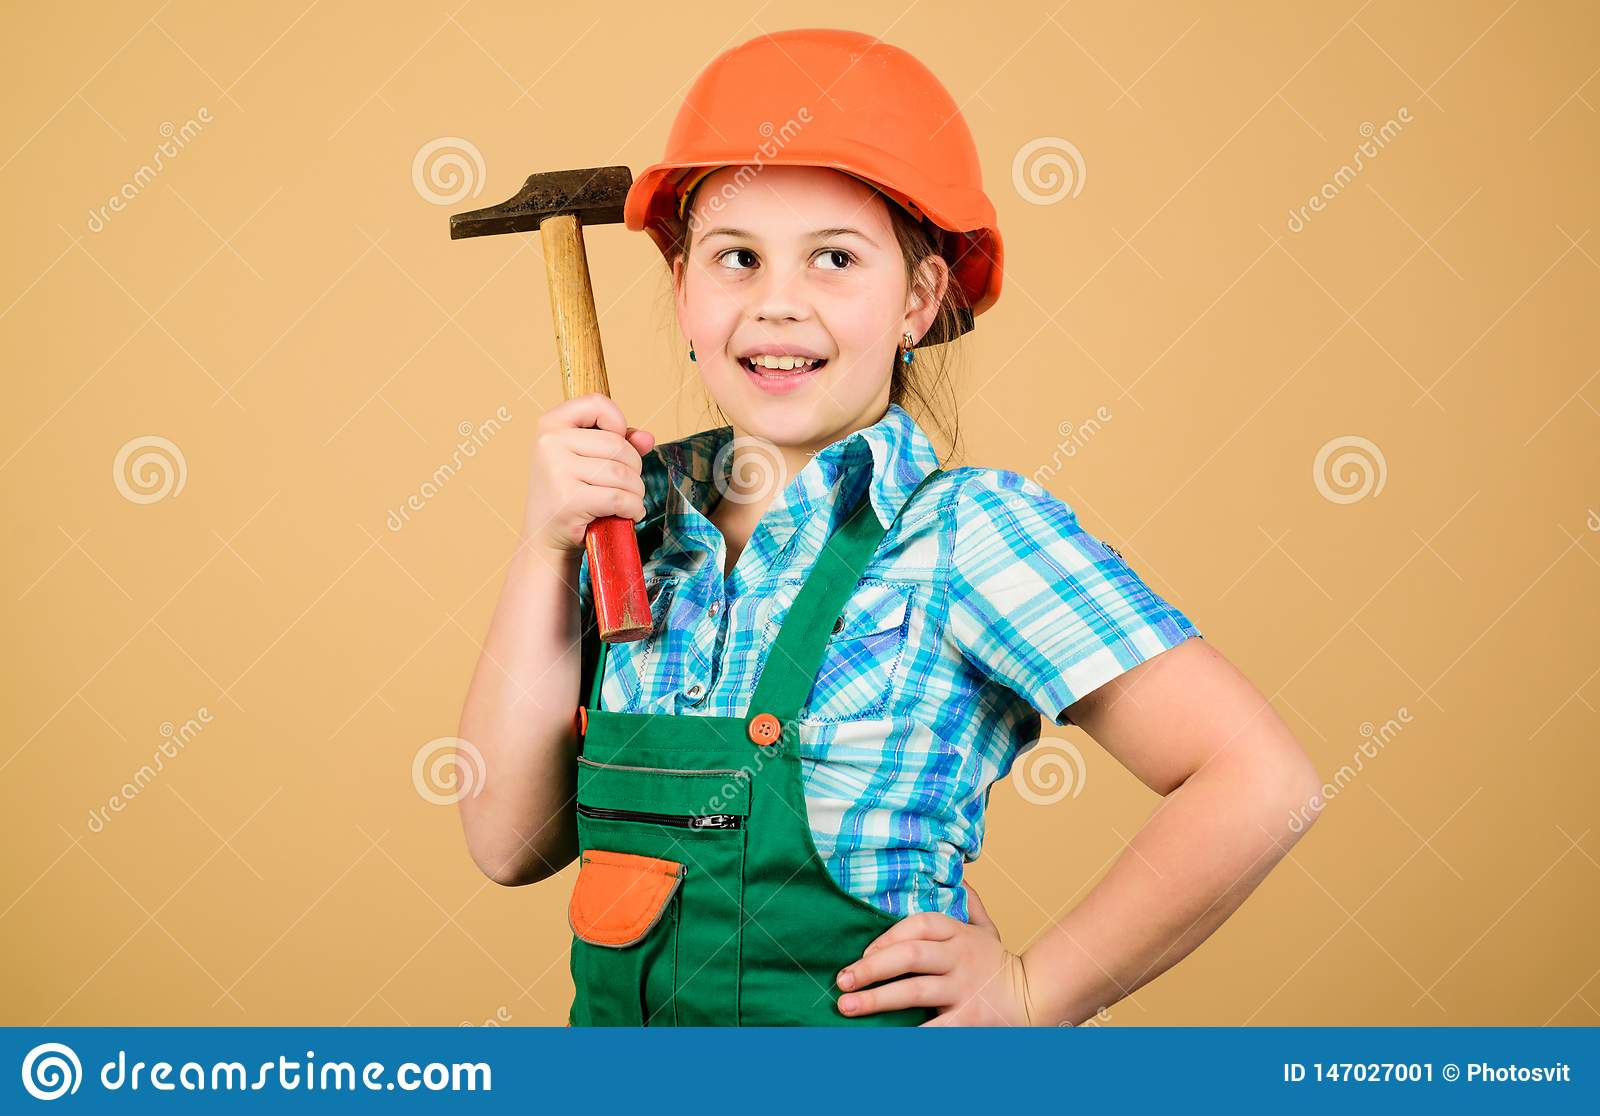 Future profession. Child care development. Builder engineer architect. Kid worker in hard hat. Tools to improve yourself